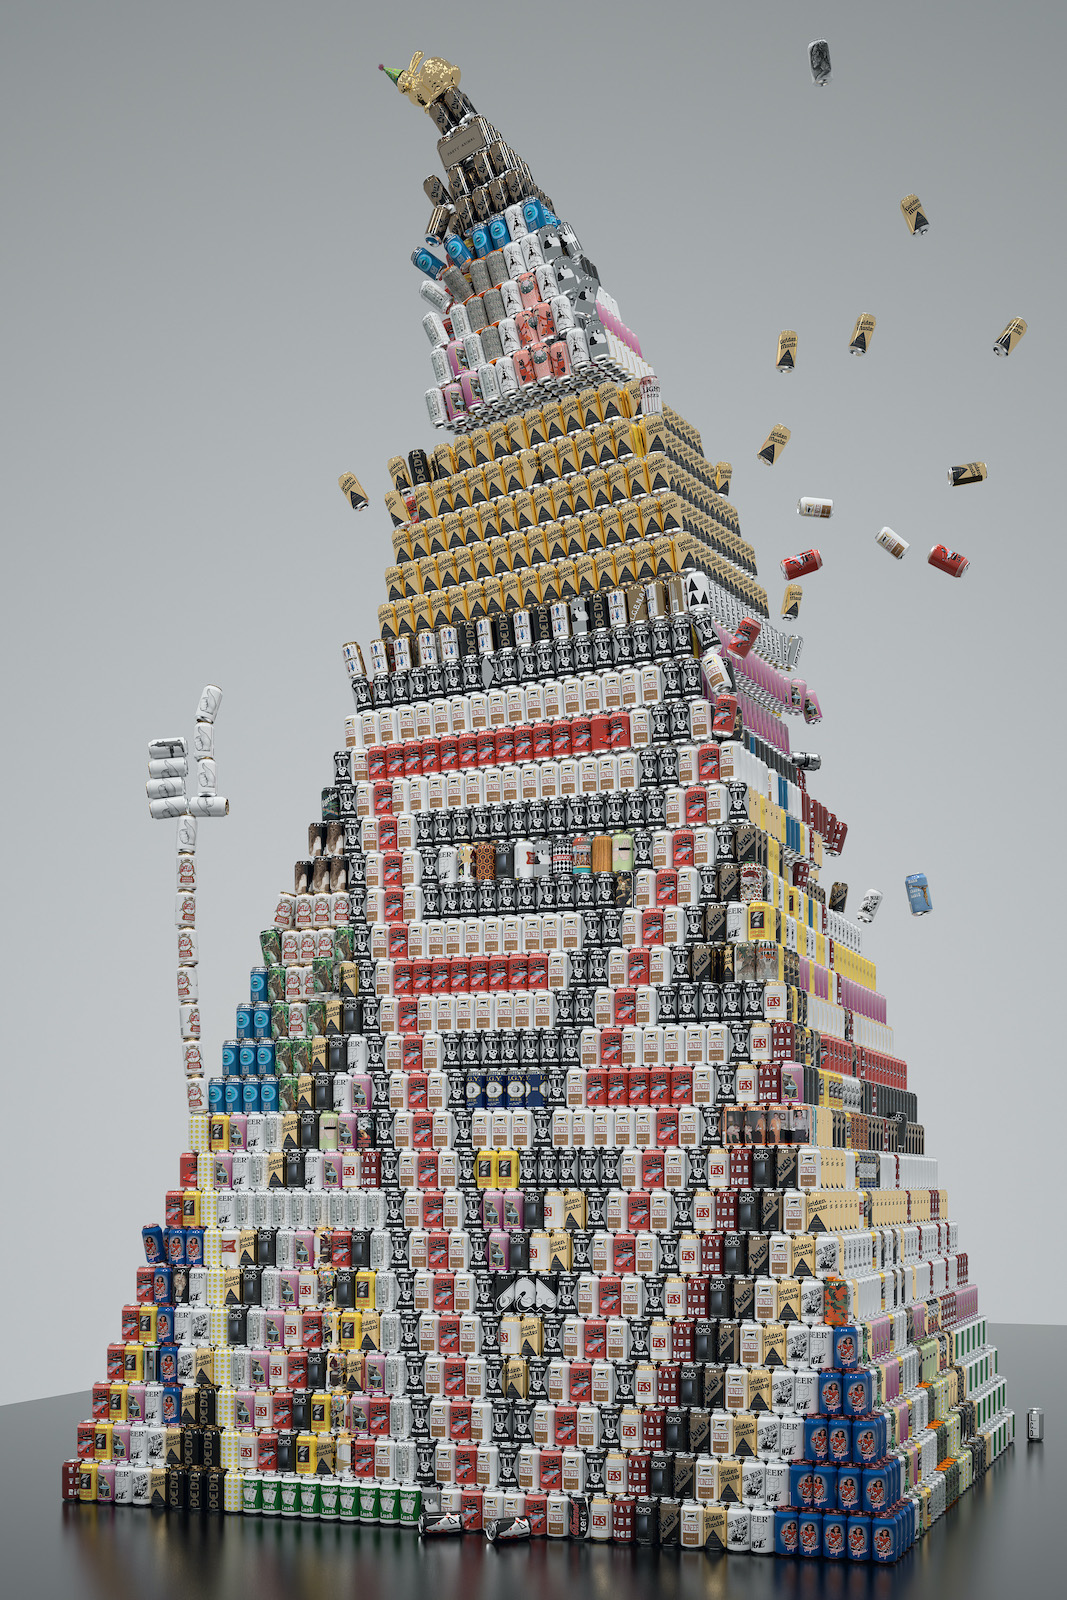 Falling tower made of different beers